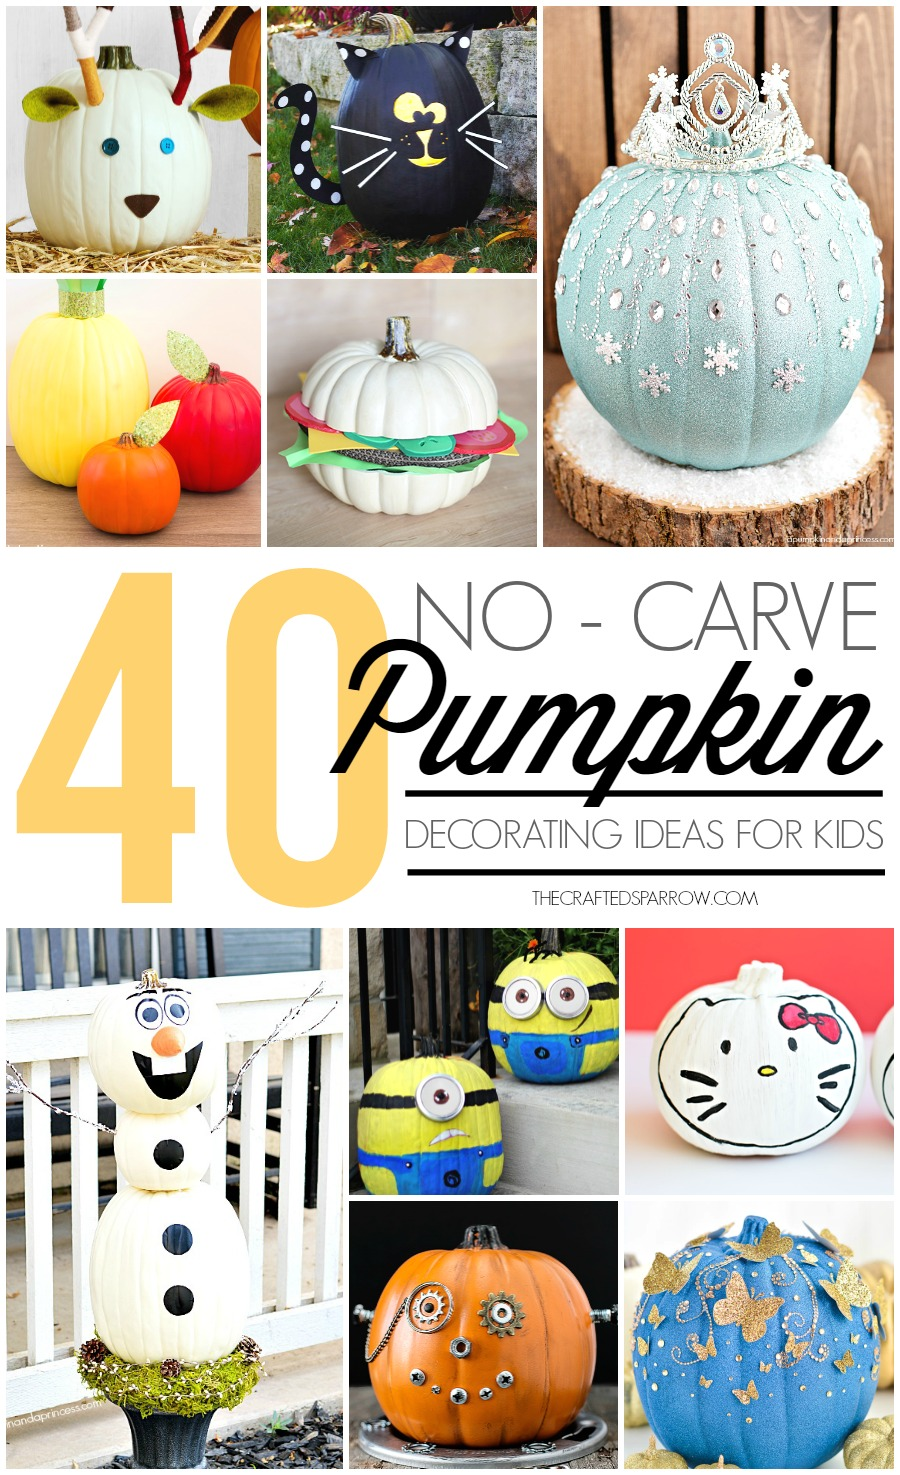 40 No-Carve Pumpkin Decorating Ideas for Kids